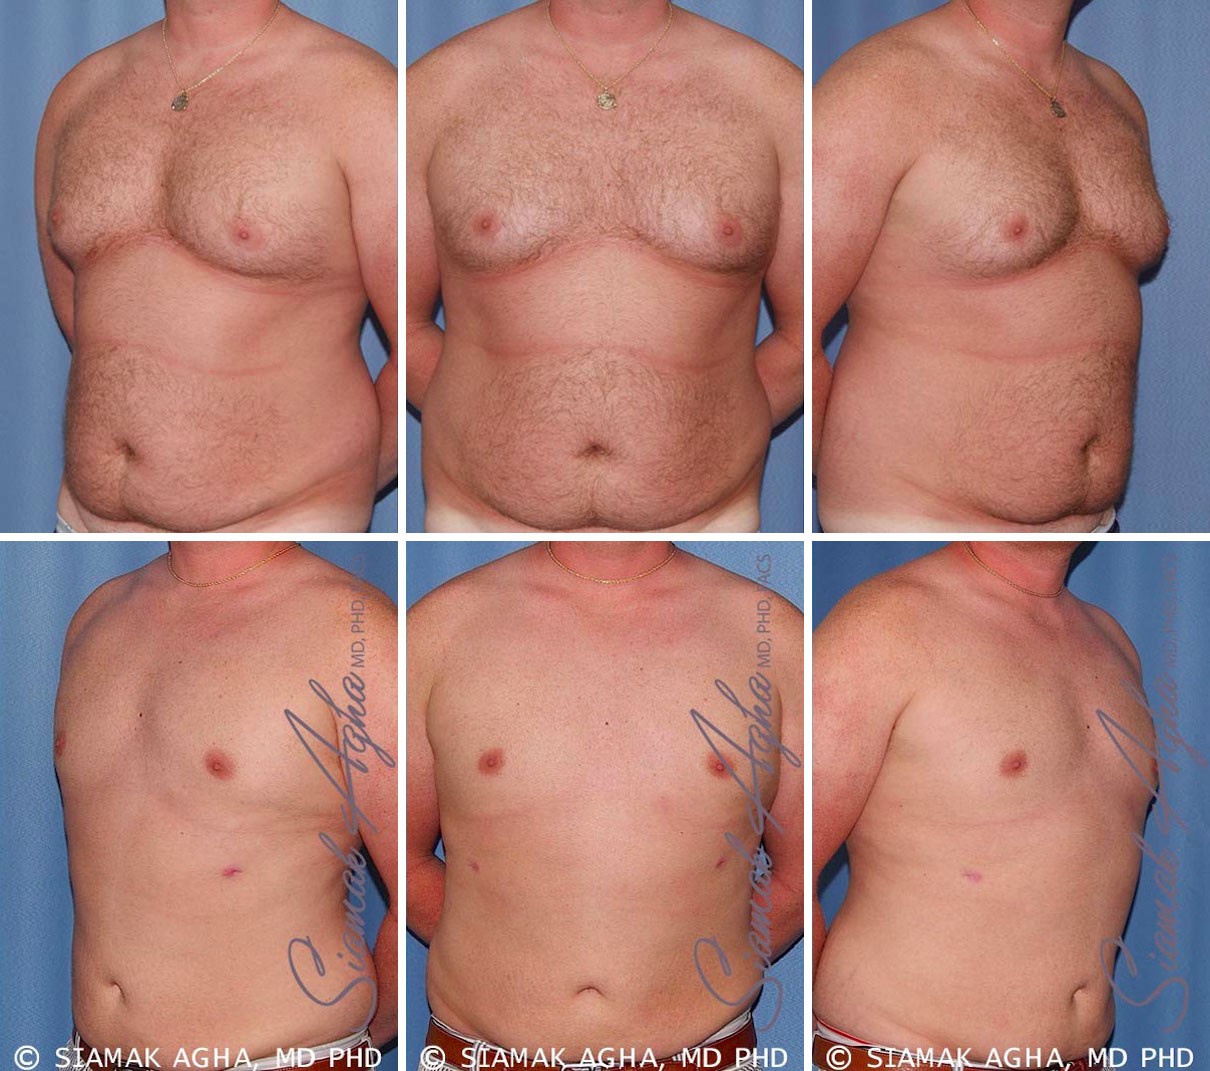 Liposuction Before and After Set 1